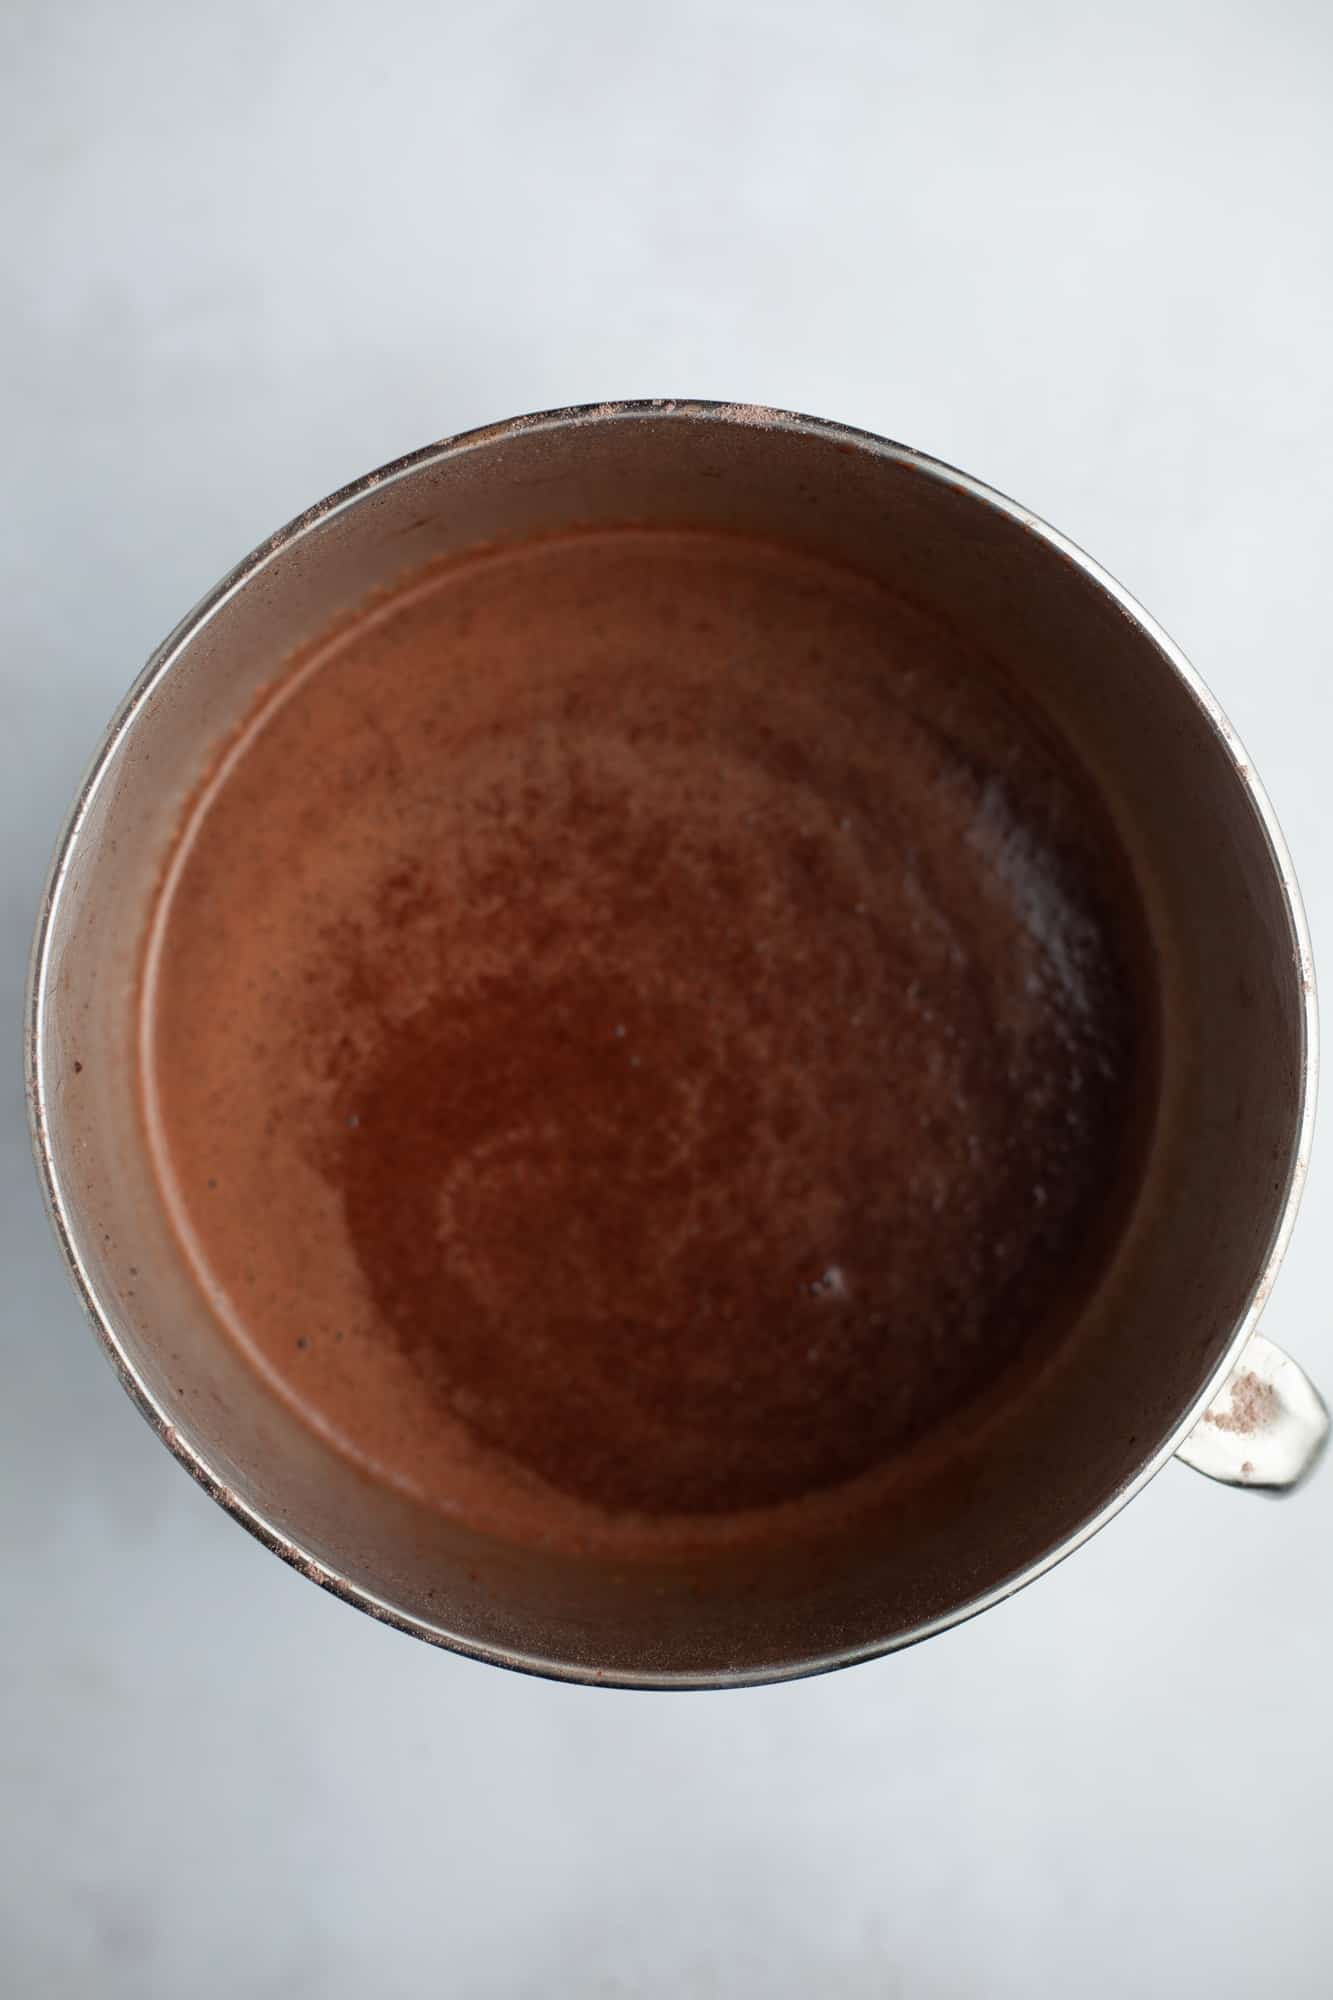 A large silver mixing bowl with chocolate cake batter in it